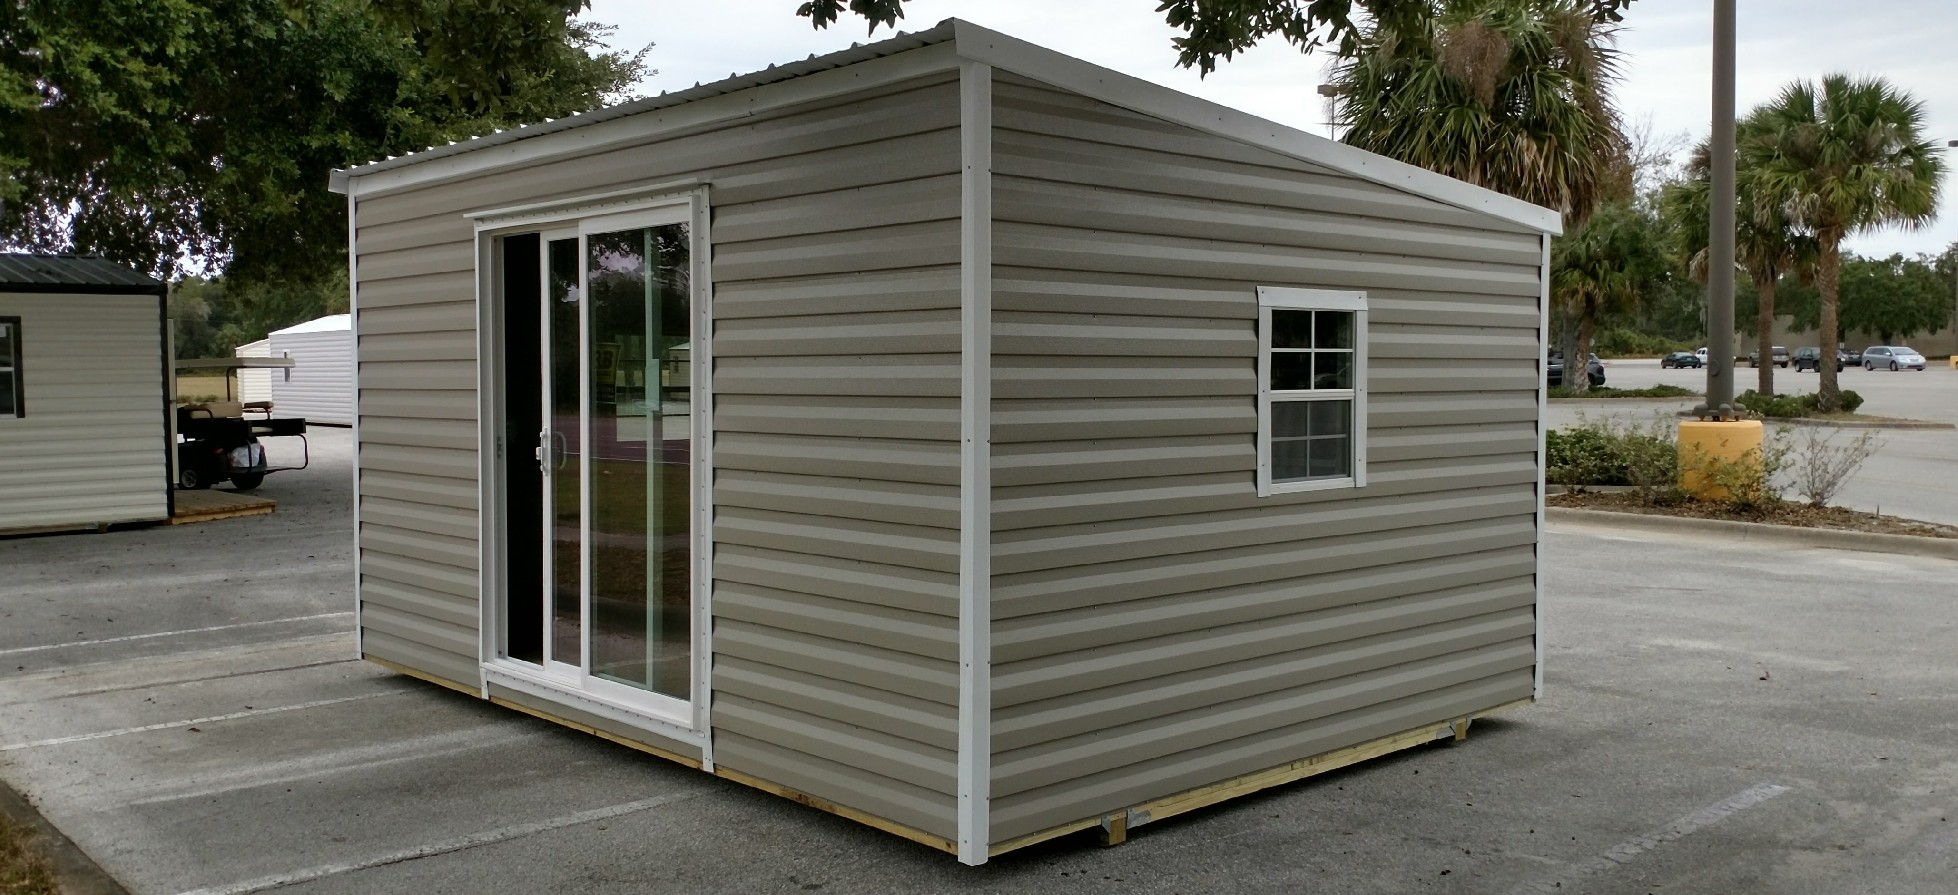 Sheds metal buildings garages pole barns carports for Single slope carport